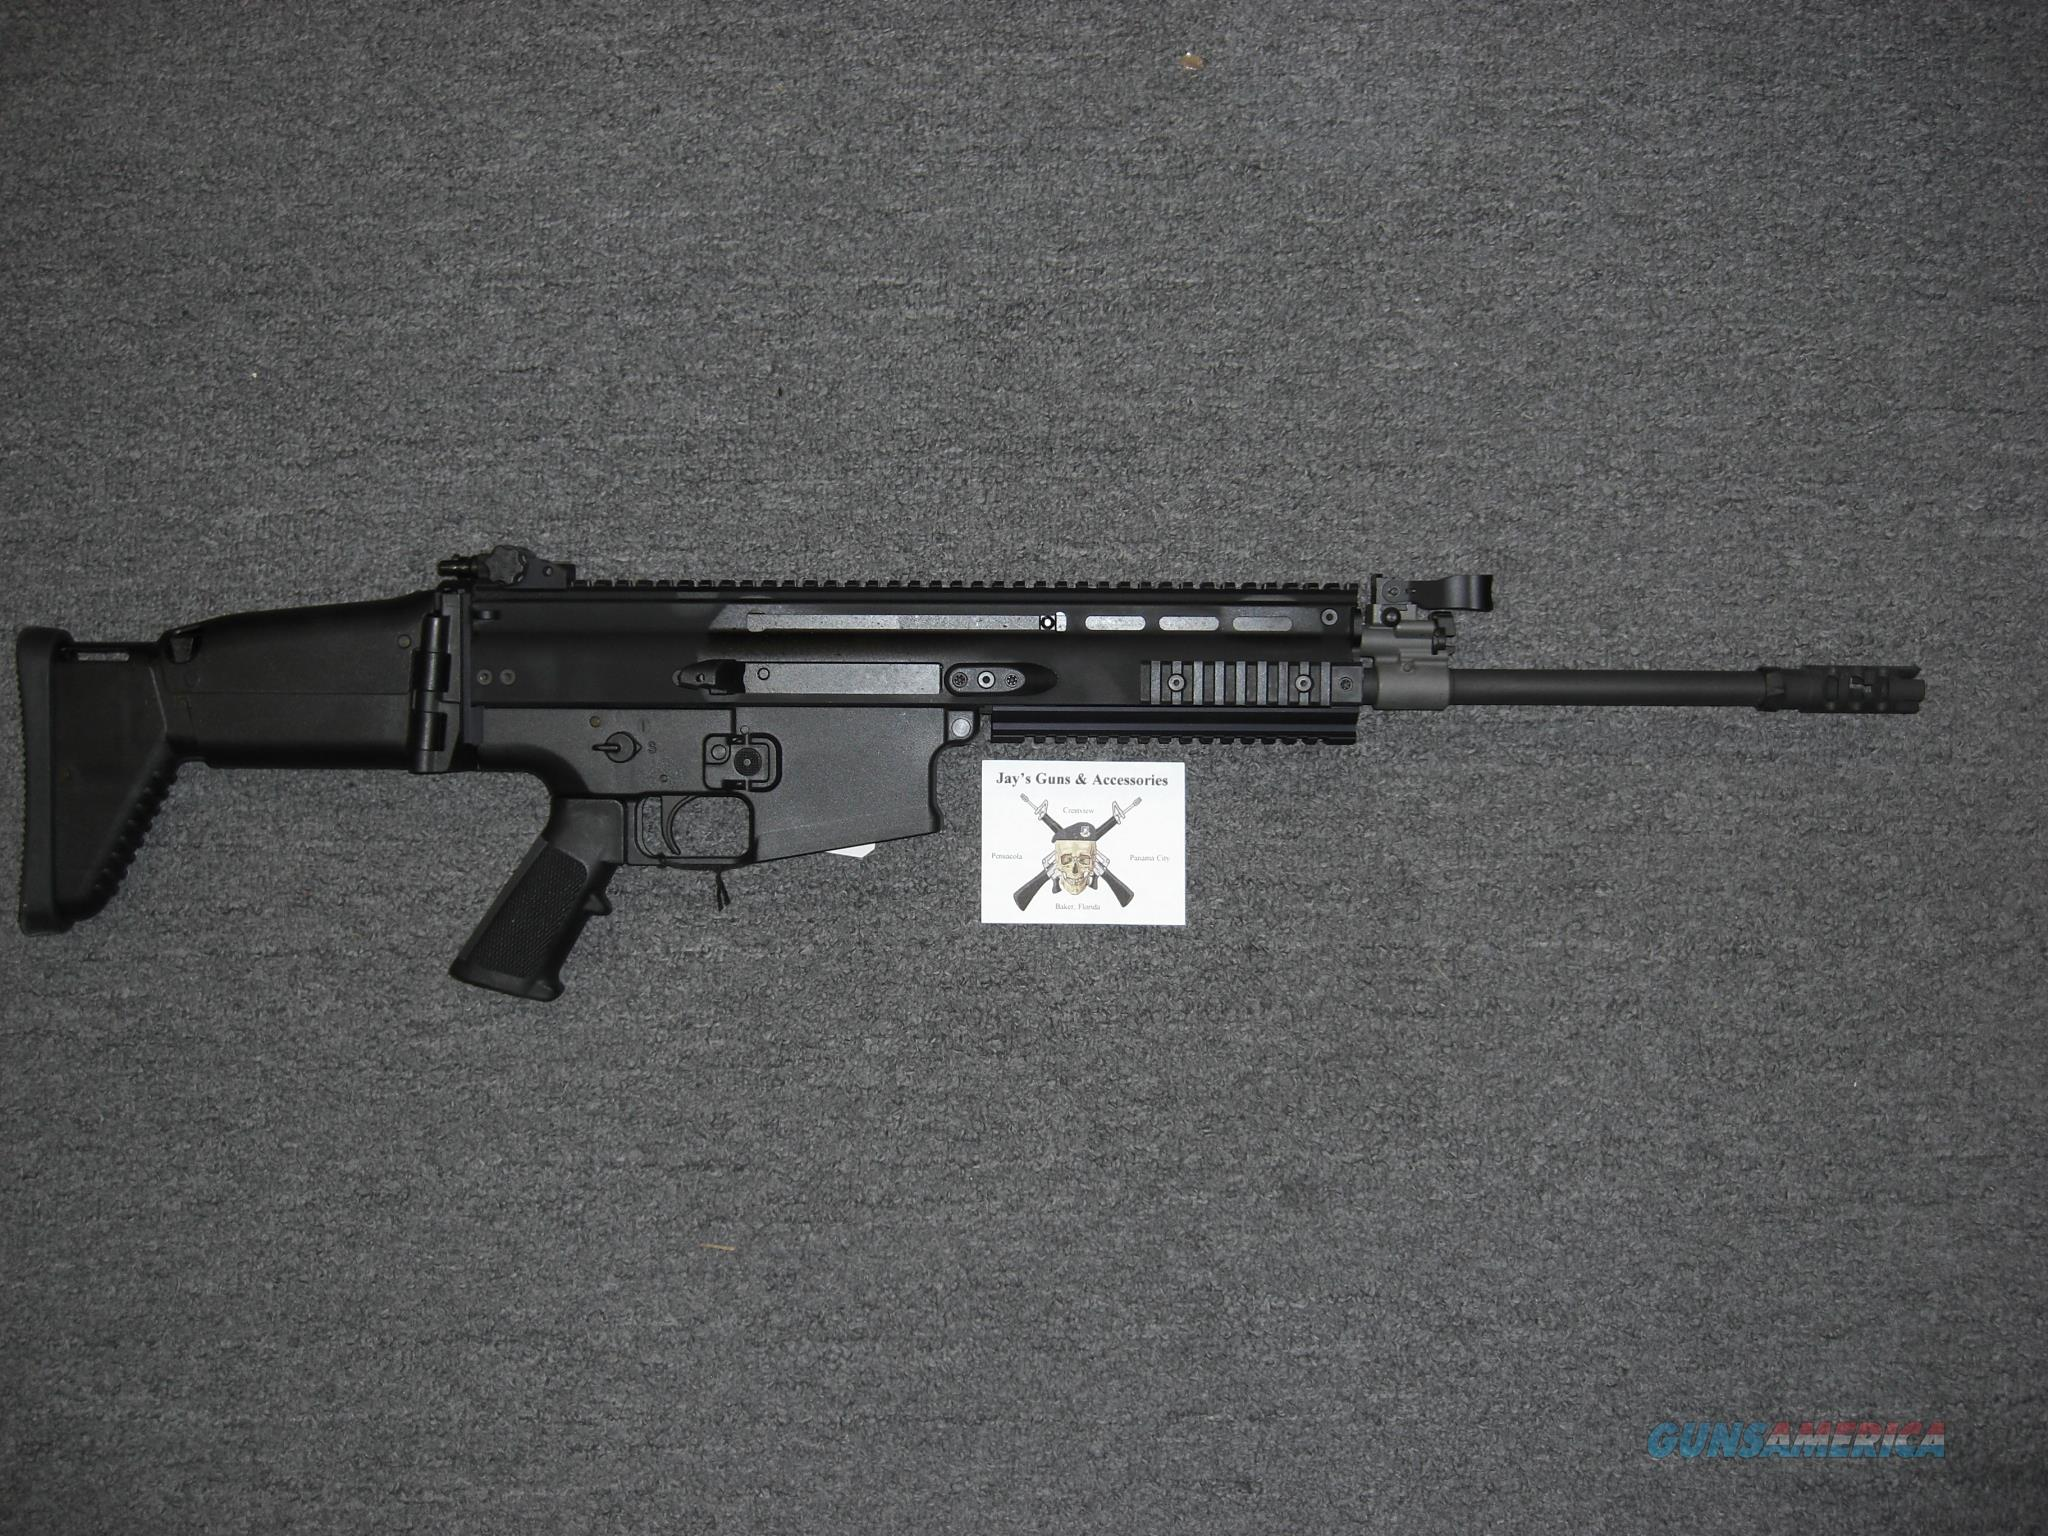 FNH SCAR 17S w/Black Finish in .308  Guns > Rifles > FNH - Fabrique Nationale (FN) Rifles > Semi-auto > Other